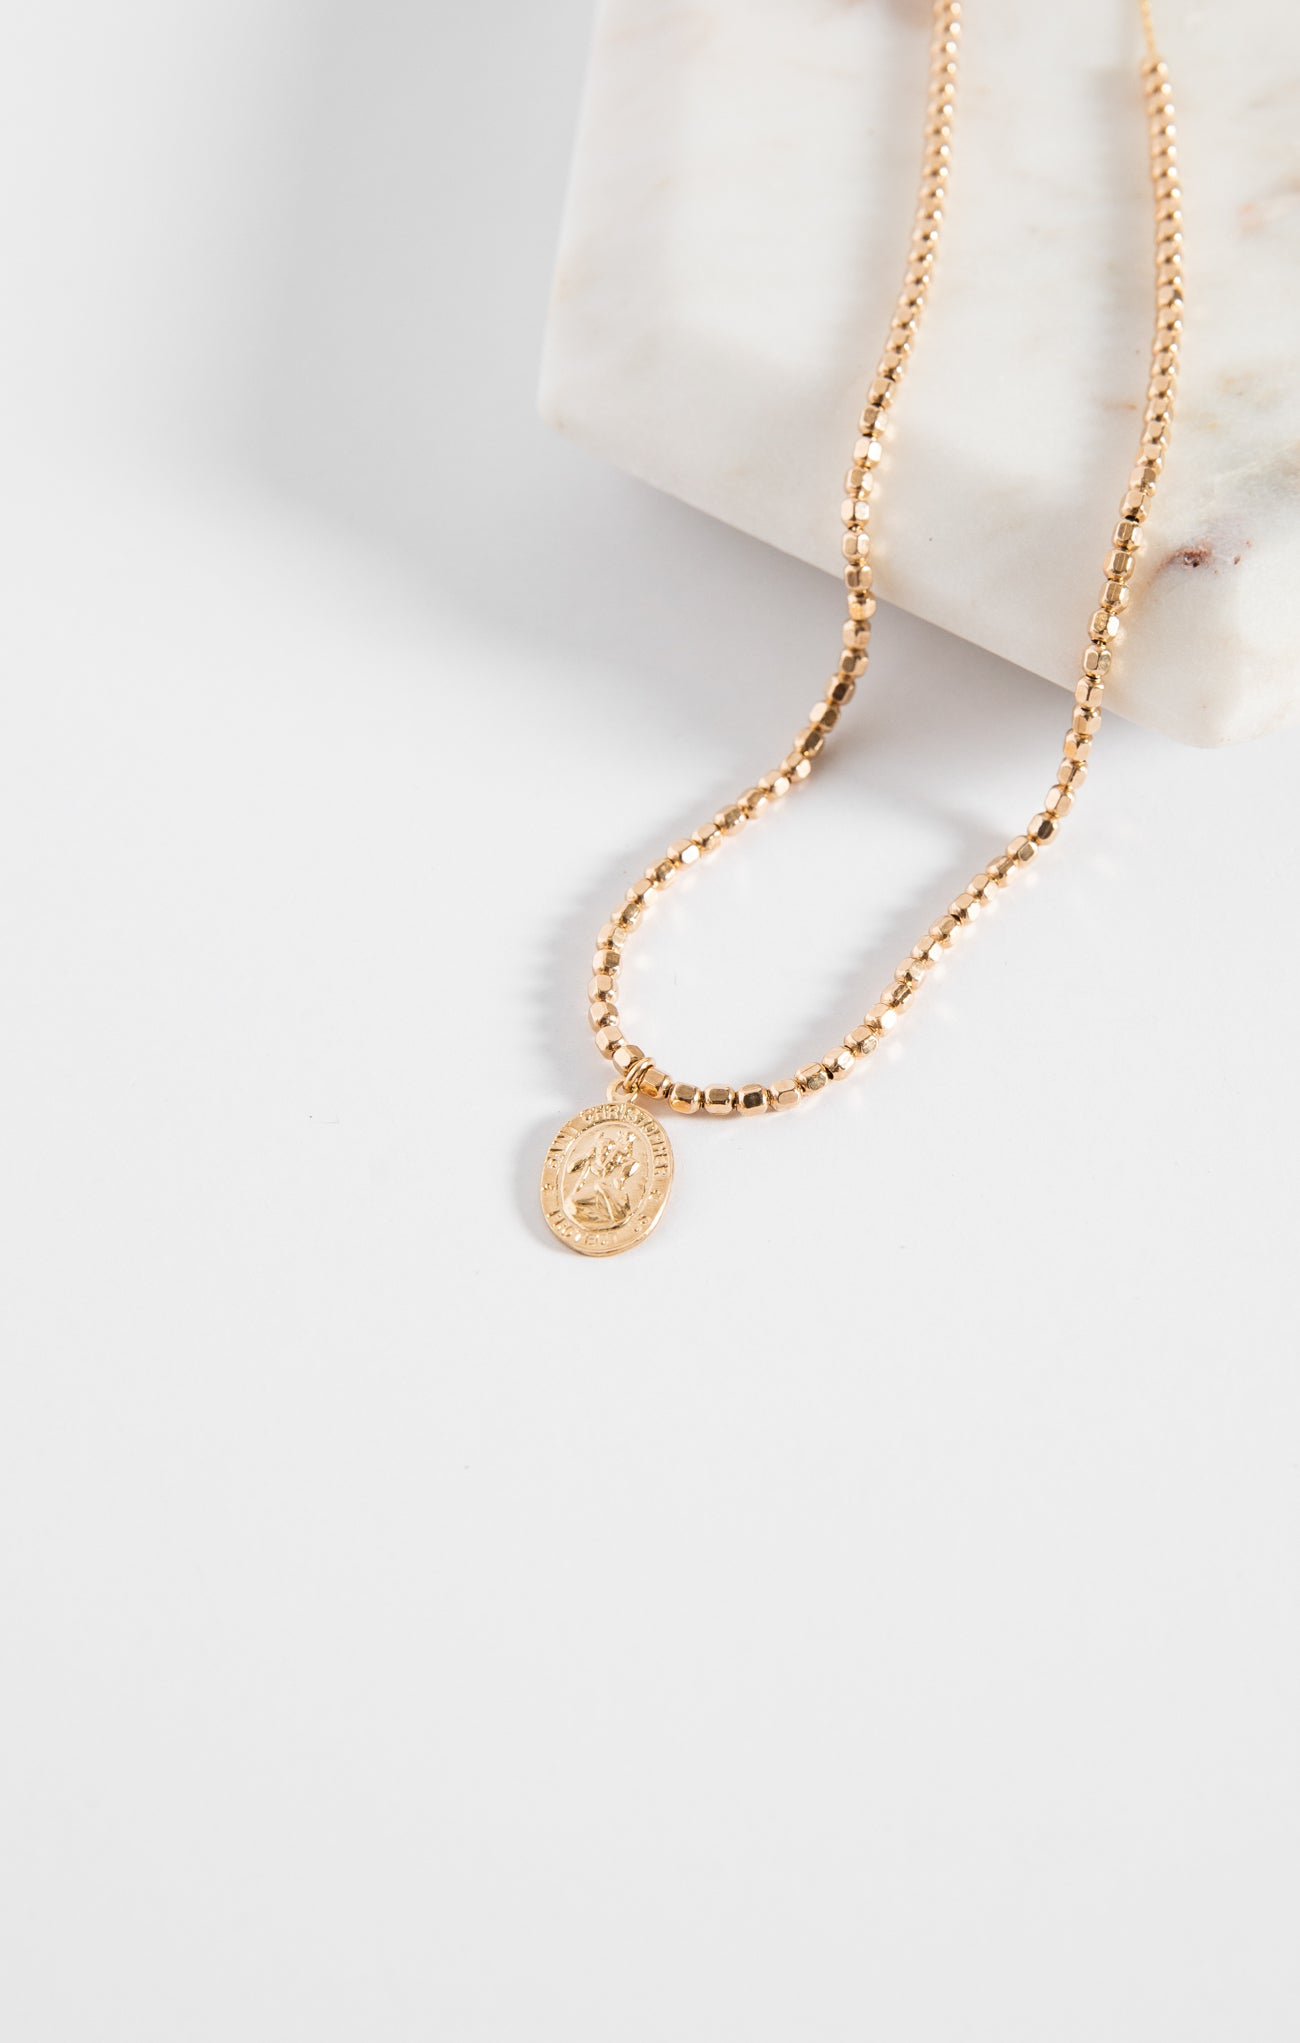 Jewelry St. Christopher Necklace By FLEURI St. Christopher Necklace By FLEURI